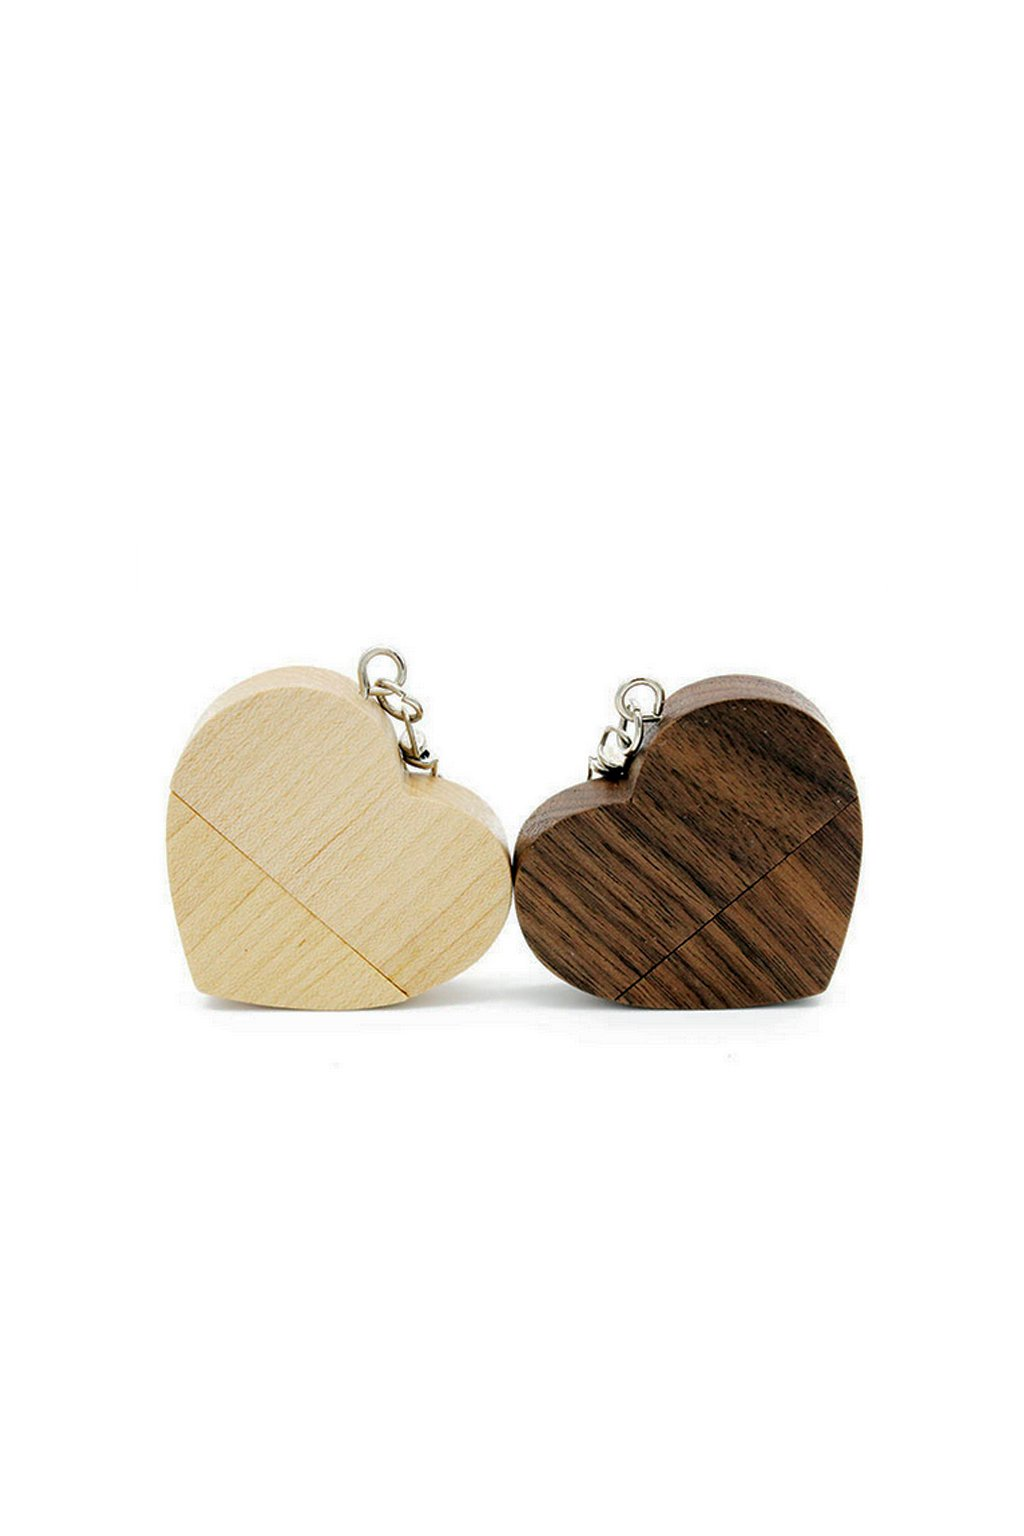 Heart shaped wooden material of usb stick